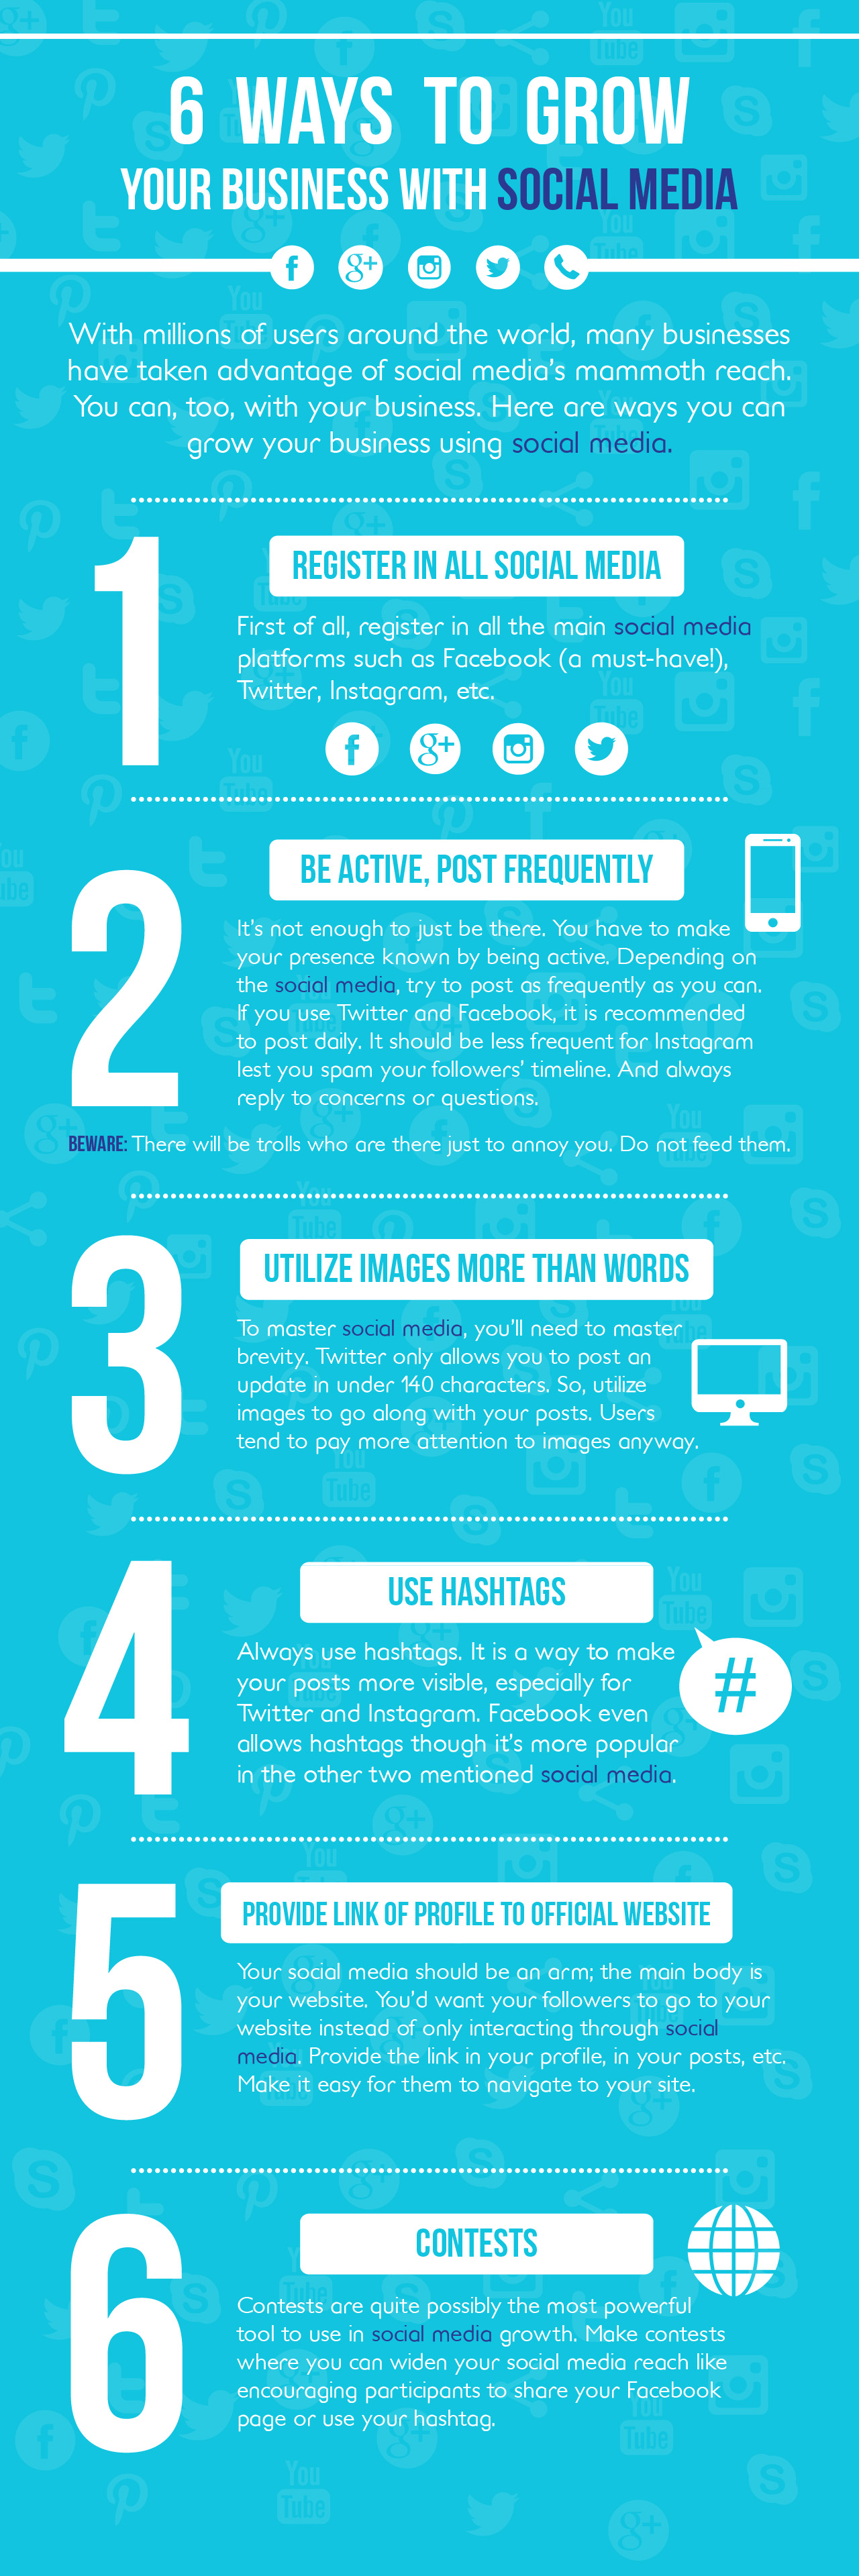 6 wys to grow your business with social media inforgraphic